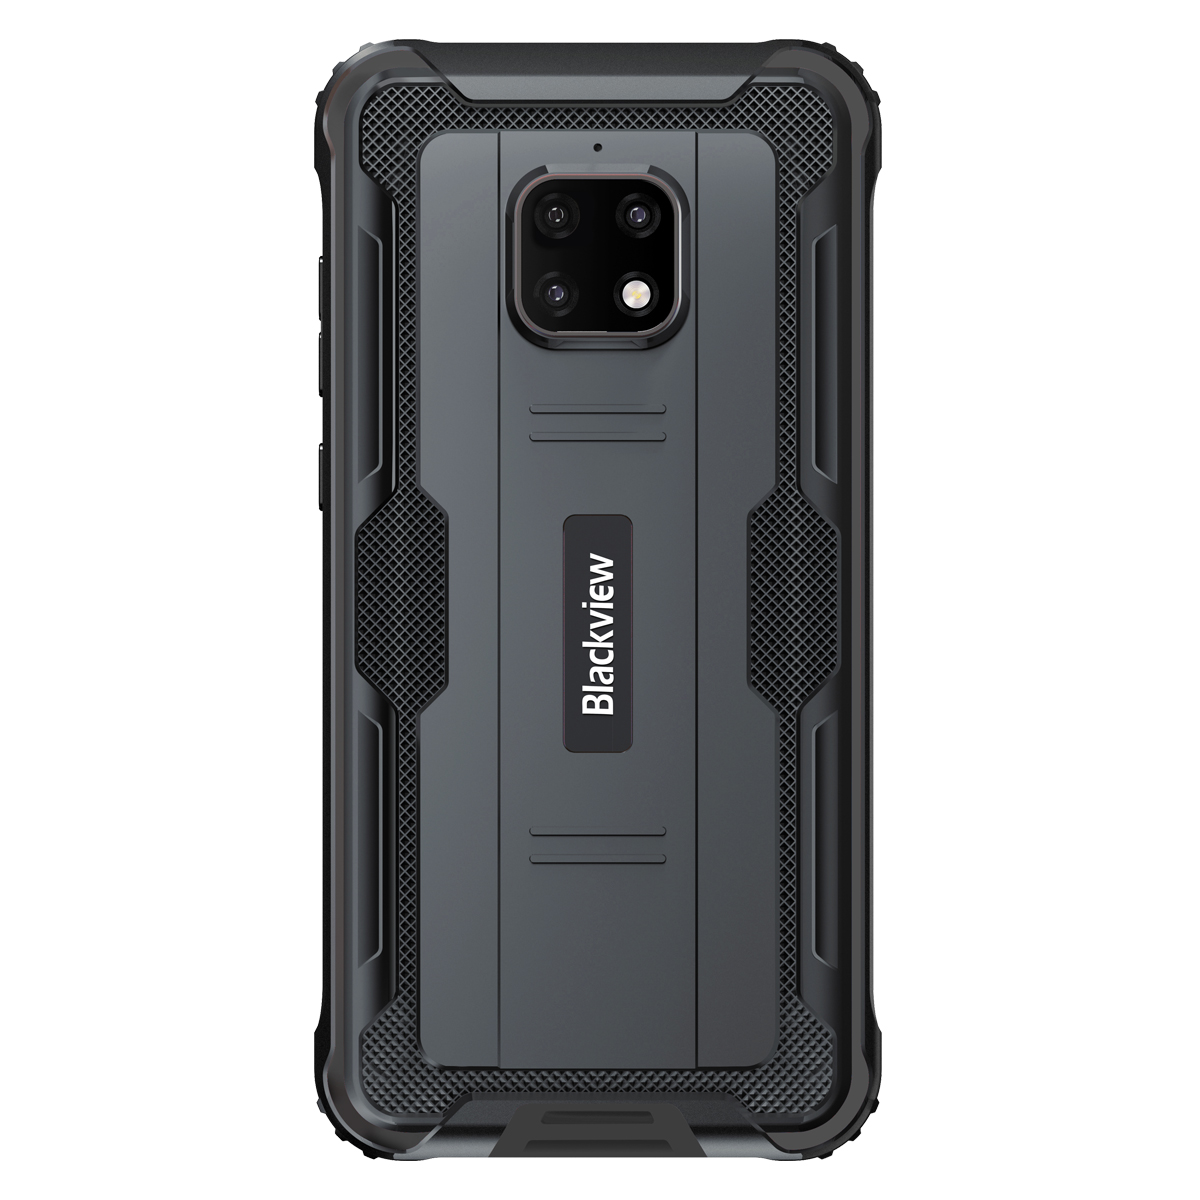 Blackview BV4900 Pro Global Version IP68&IP69k Waterproof 5.7 inch NFC Android 10 5580mAh 4GB 64GB Helio P22 Octa Core 4G Rugged Smartphone